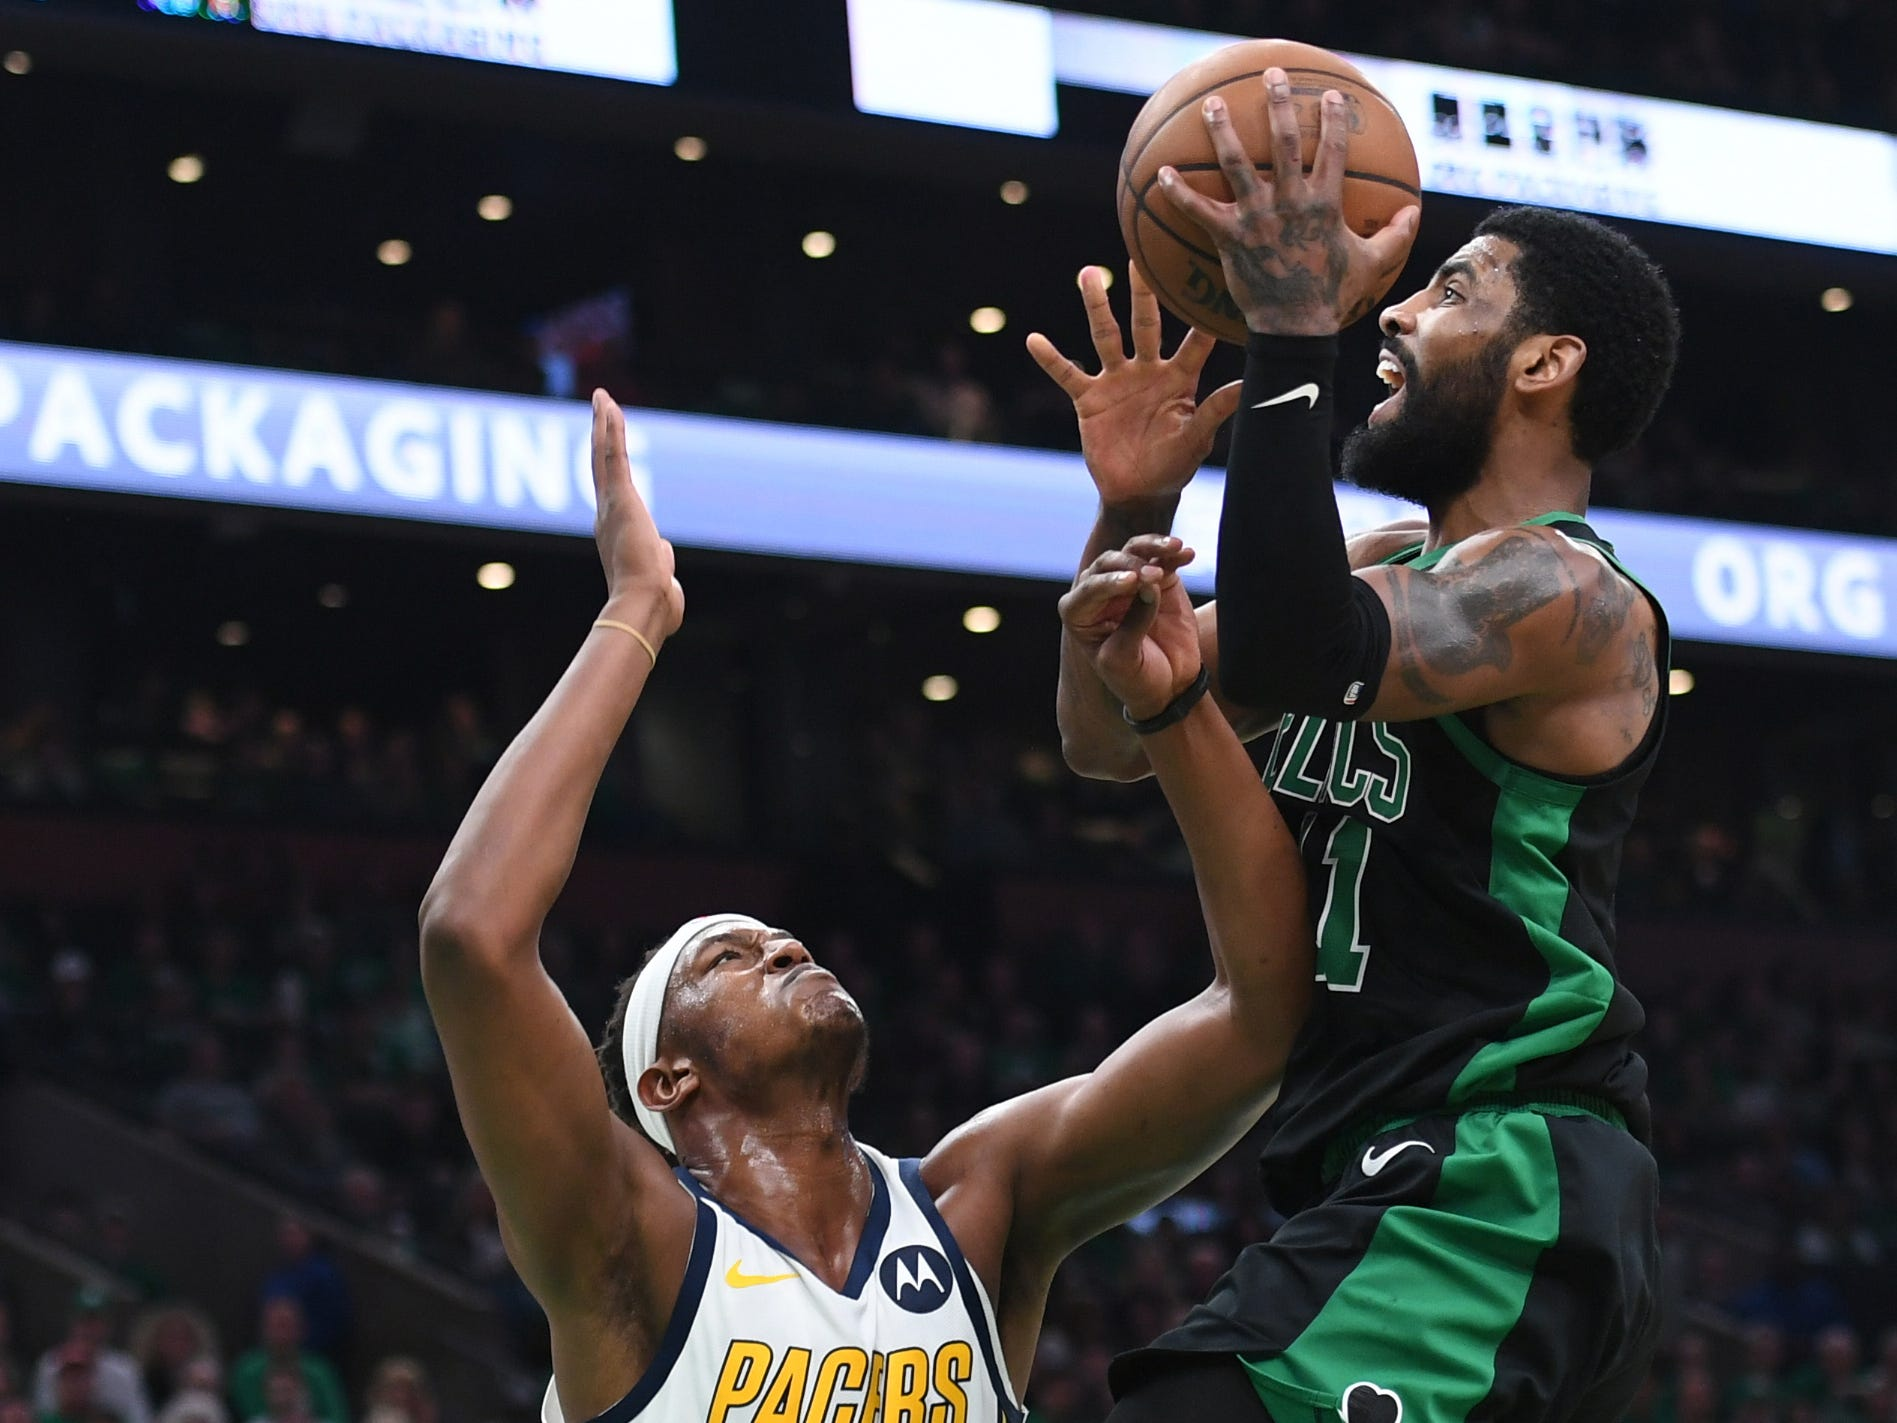 Apr 14, 2019; Boston, MA, USA; Boston Celtics guard Kyrie Irving (11) gets fouled by Indiana Pacers center Myles Turner (33) during the second half in game one of the first round of the 2019 NBA Playoffs at TD Garden.